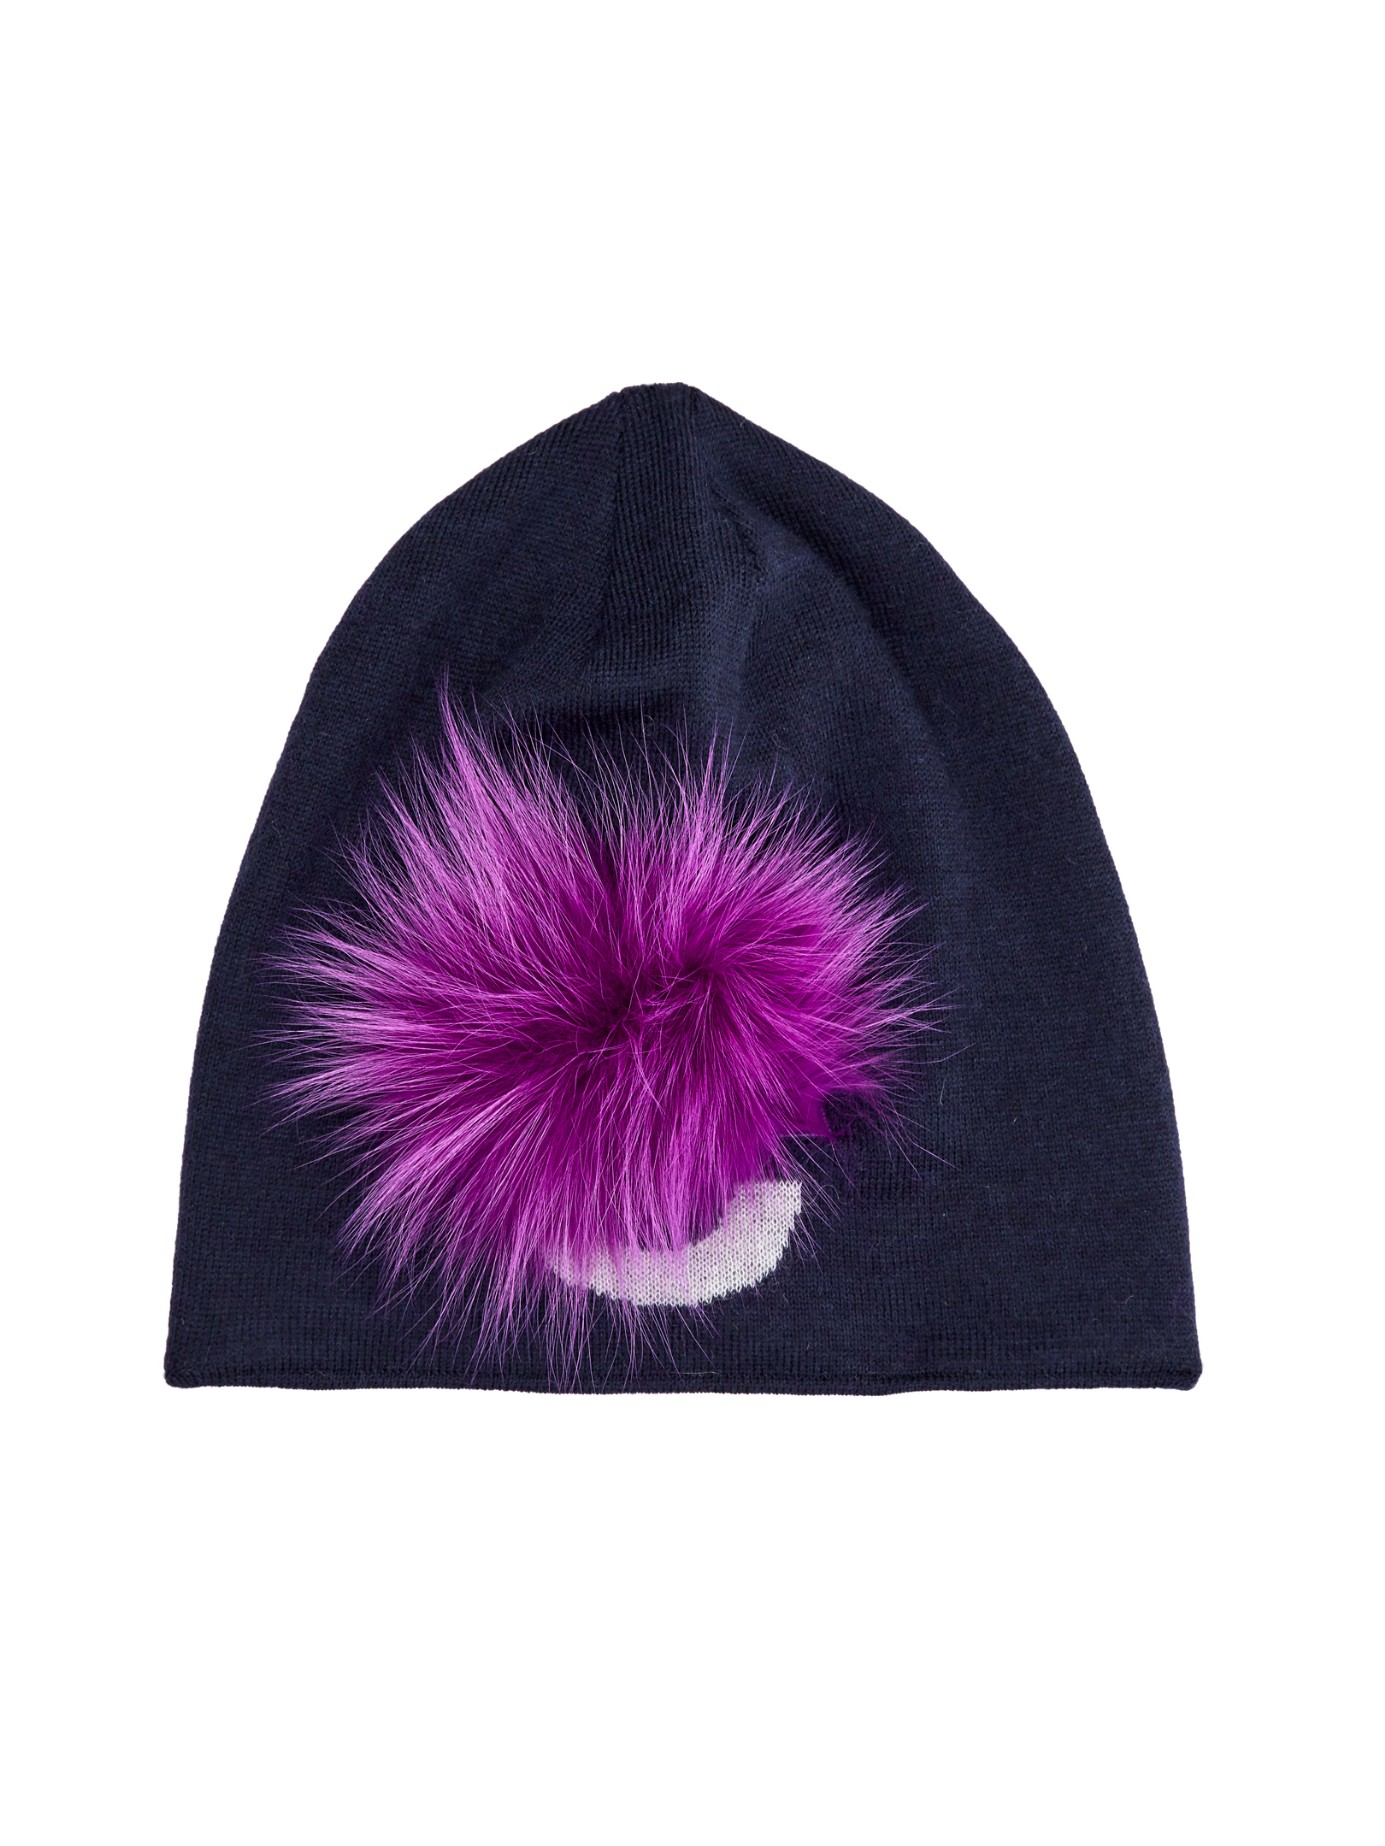 a793898c4d8 Lyst - Fendi Fur Detail Wool-Knit Beanie Hat in Blue